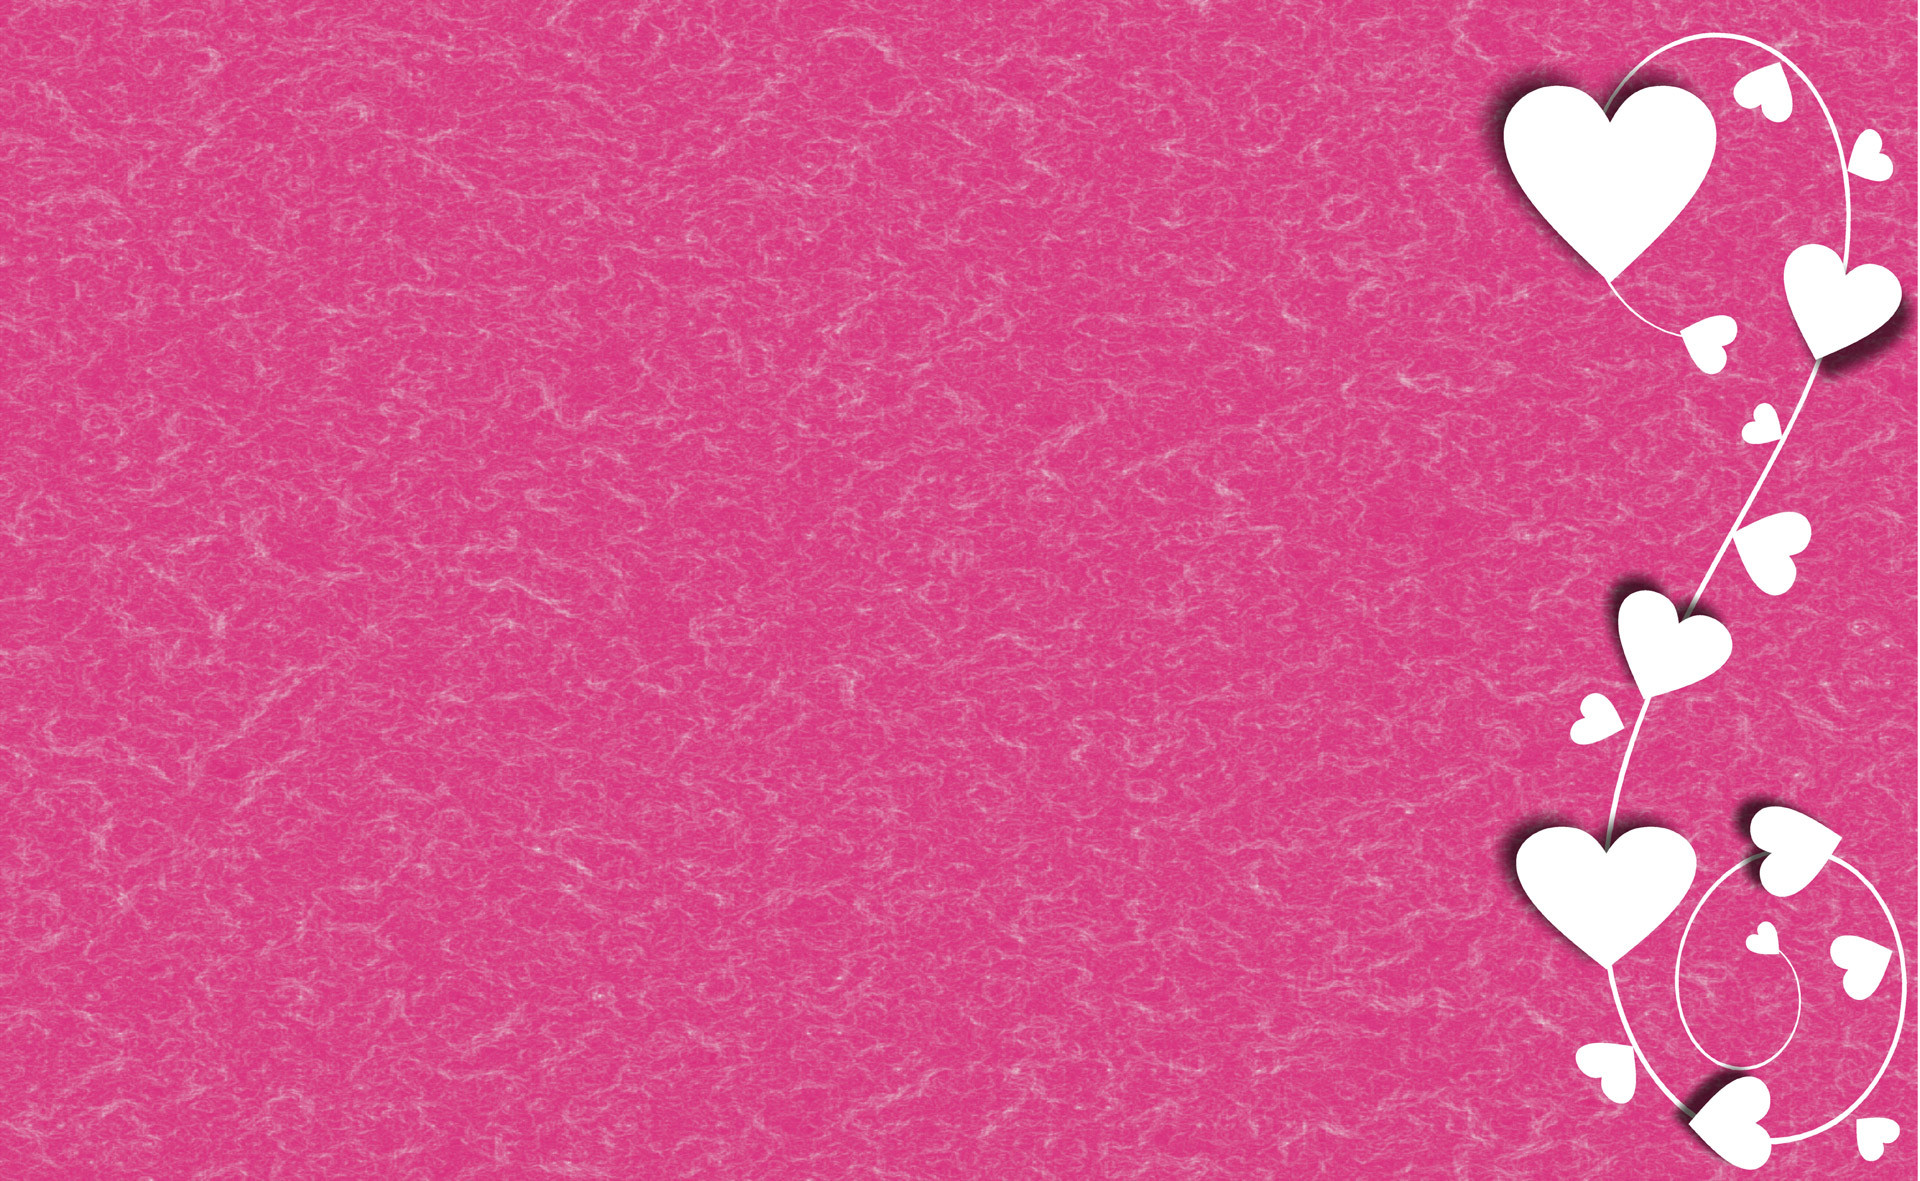 Res: 1920x1181, Excellent Pictures Collection: Pink Heart Desktop Wallpapers